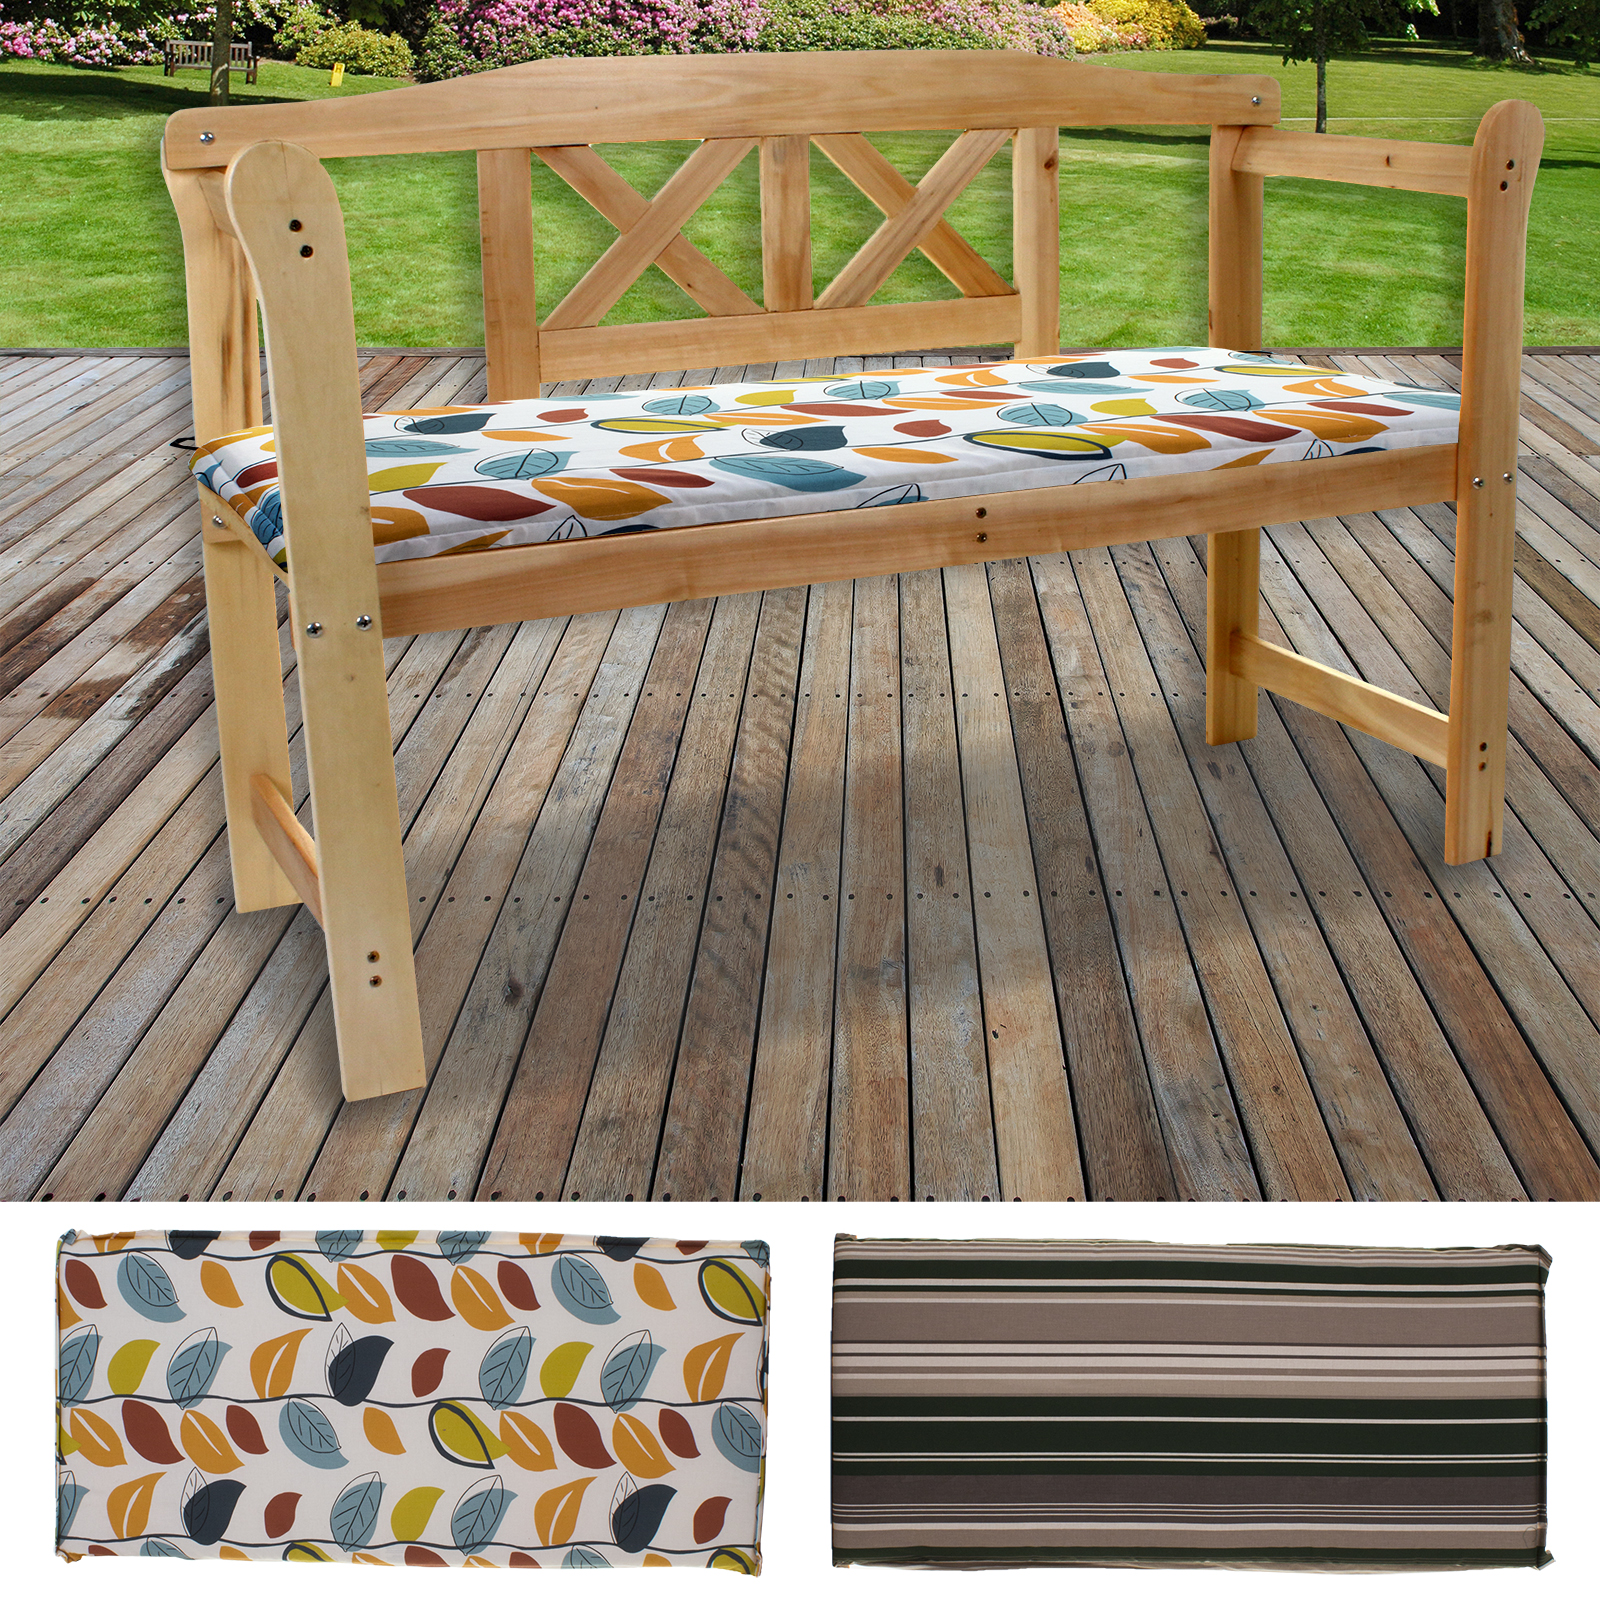 2 3 Seater Bench Cushions Outdoor Garden Seat Pad Patio Furniture